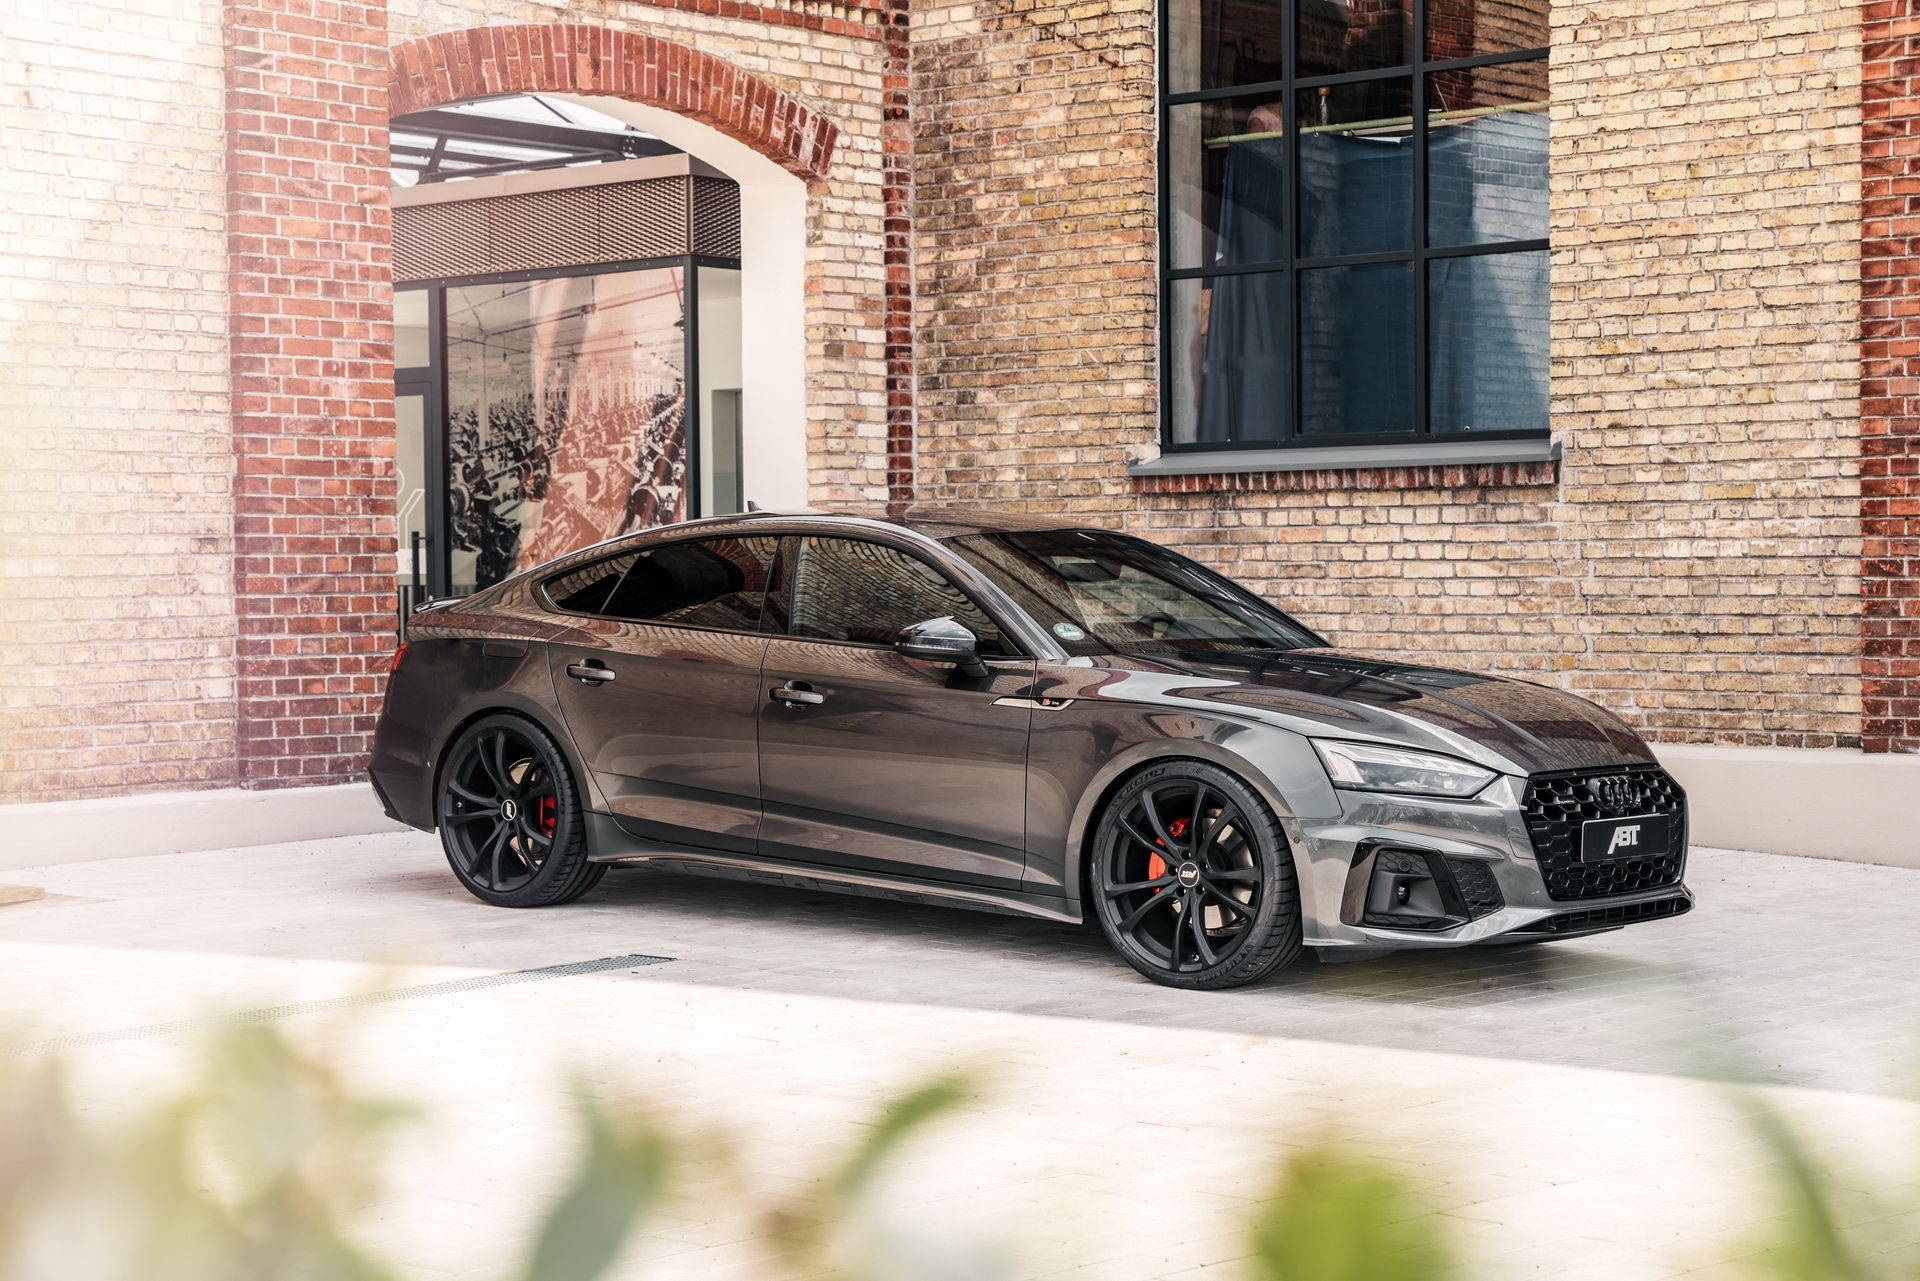 Abt Makes 2020 Audi A5 Sportback Look More Rs Ish Carscoops Audi A5 Audi A5 Sportback A5 Sportback